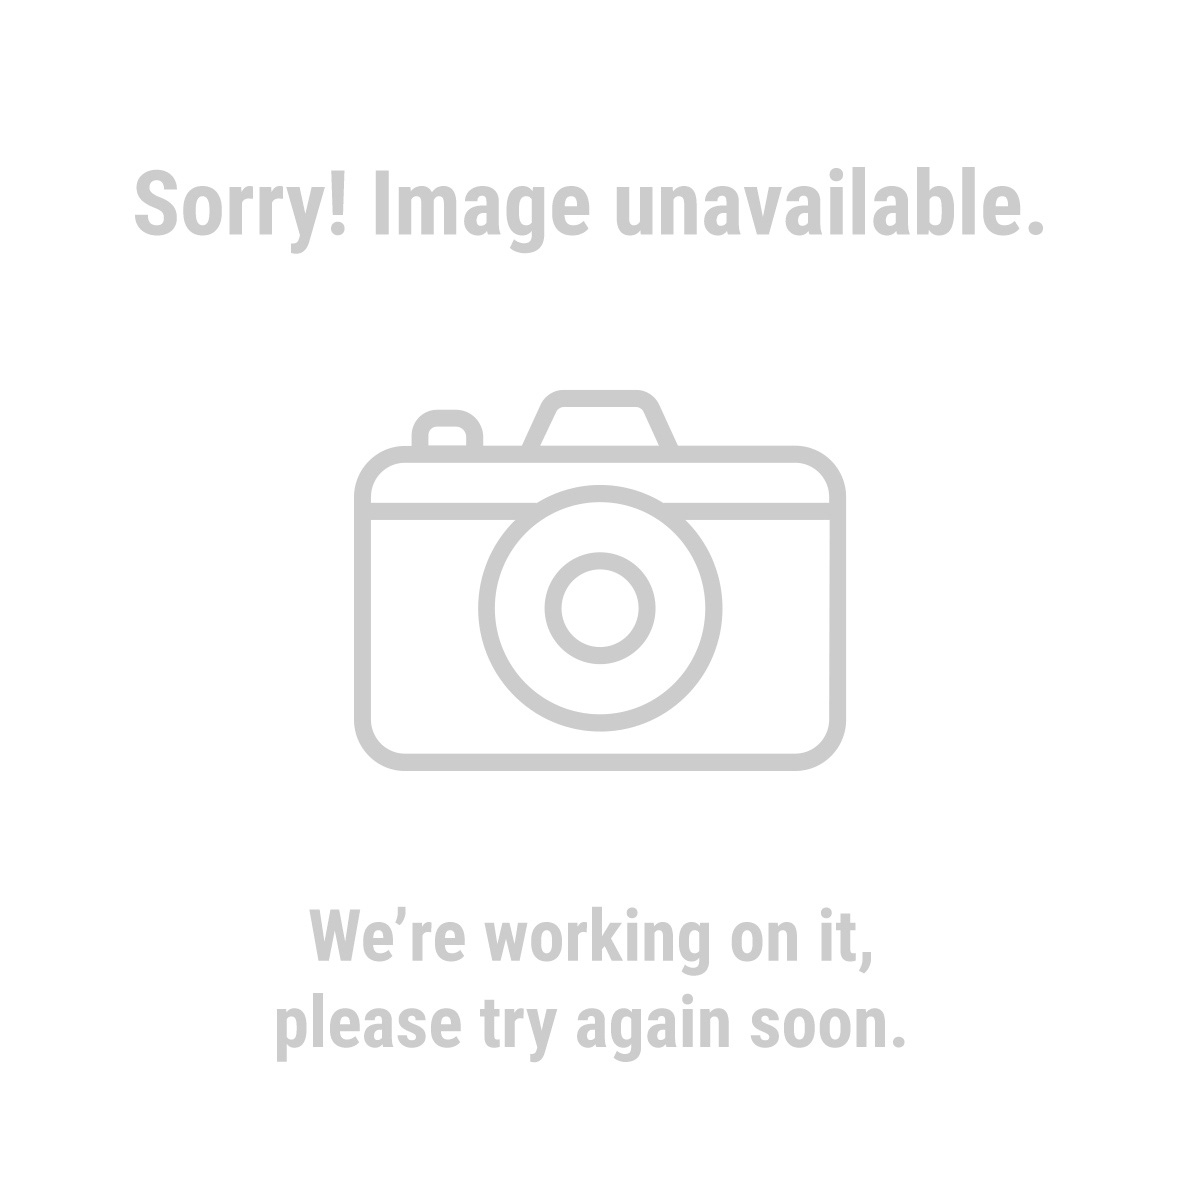 Pittsburgh Automotive 69053 18 Piece Disc Brake Pad and Caliper Service Tool Kit